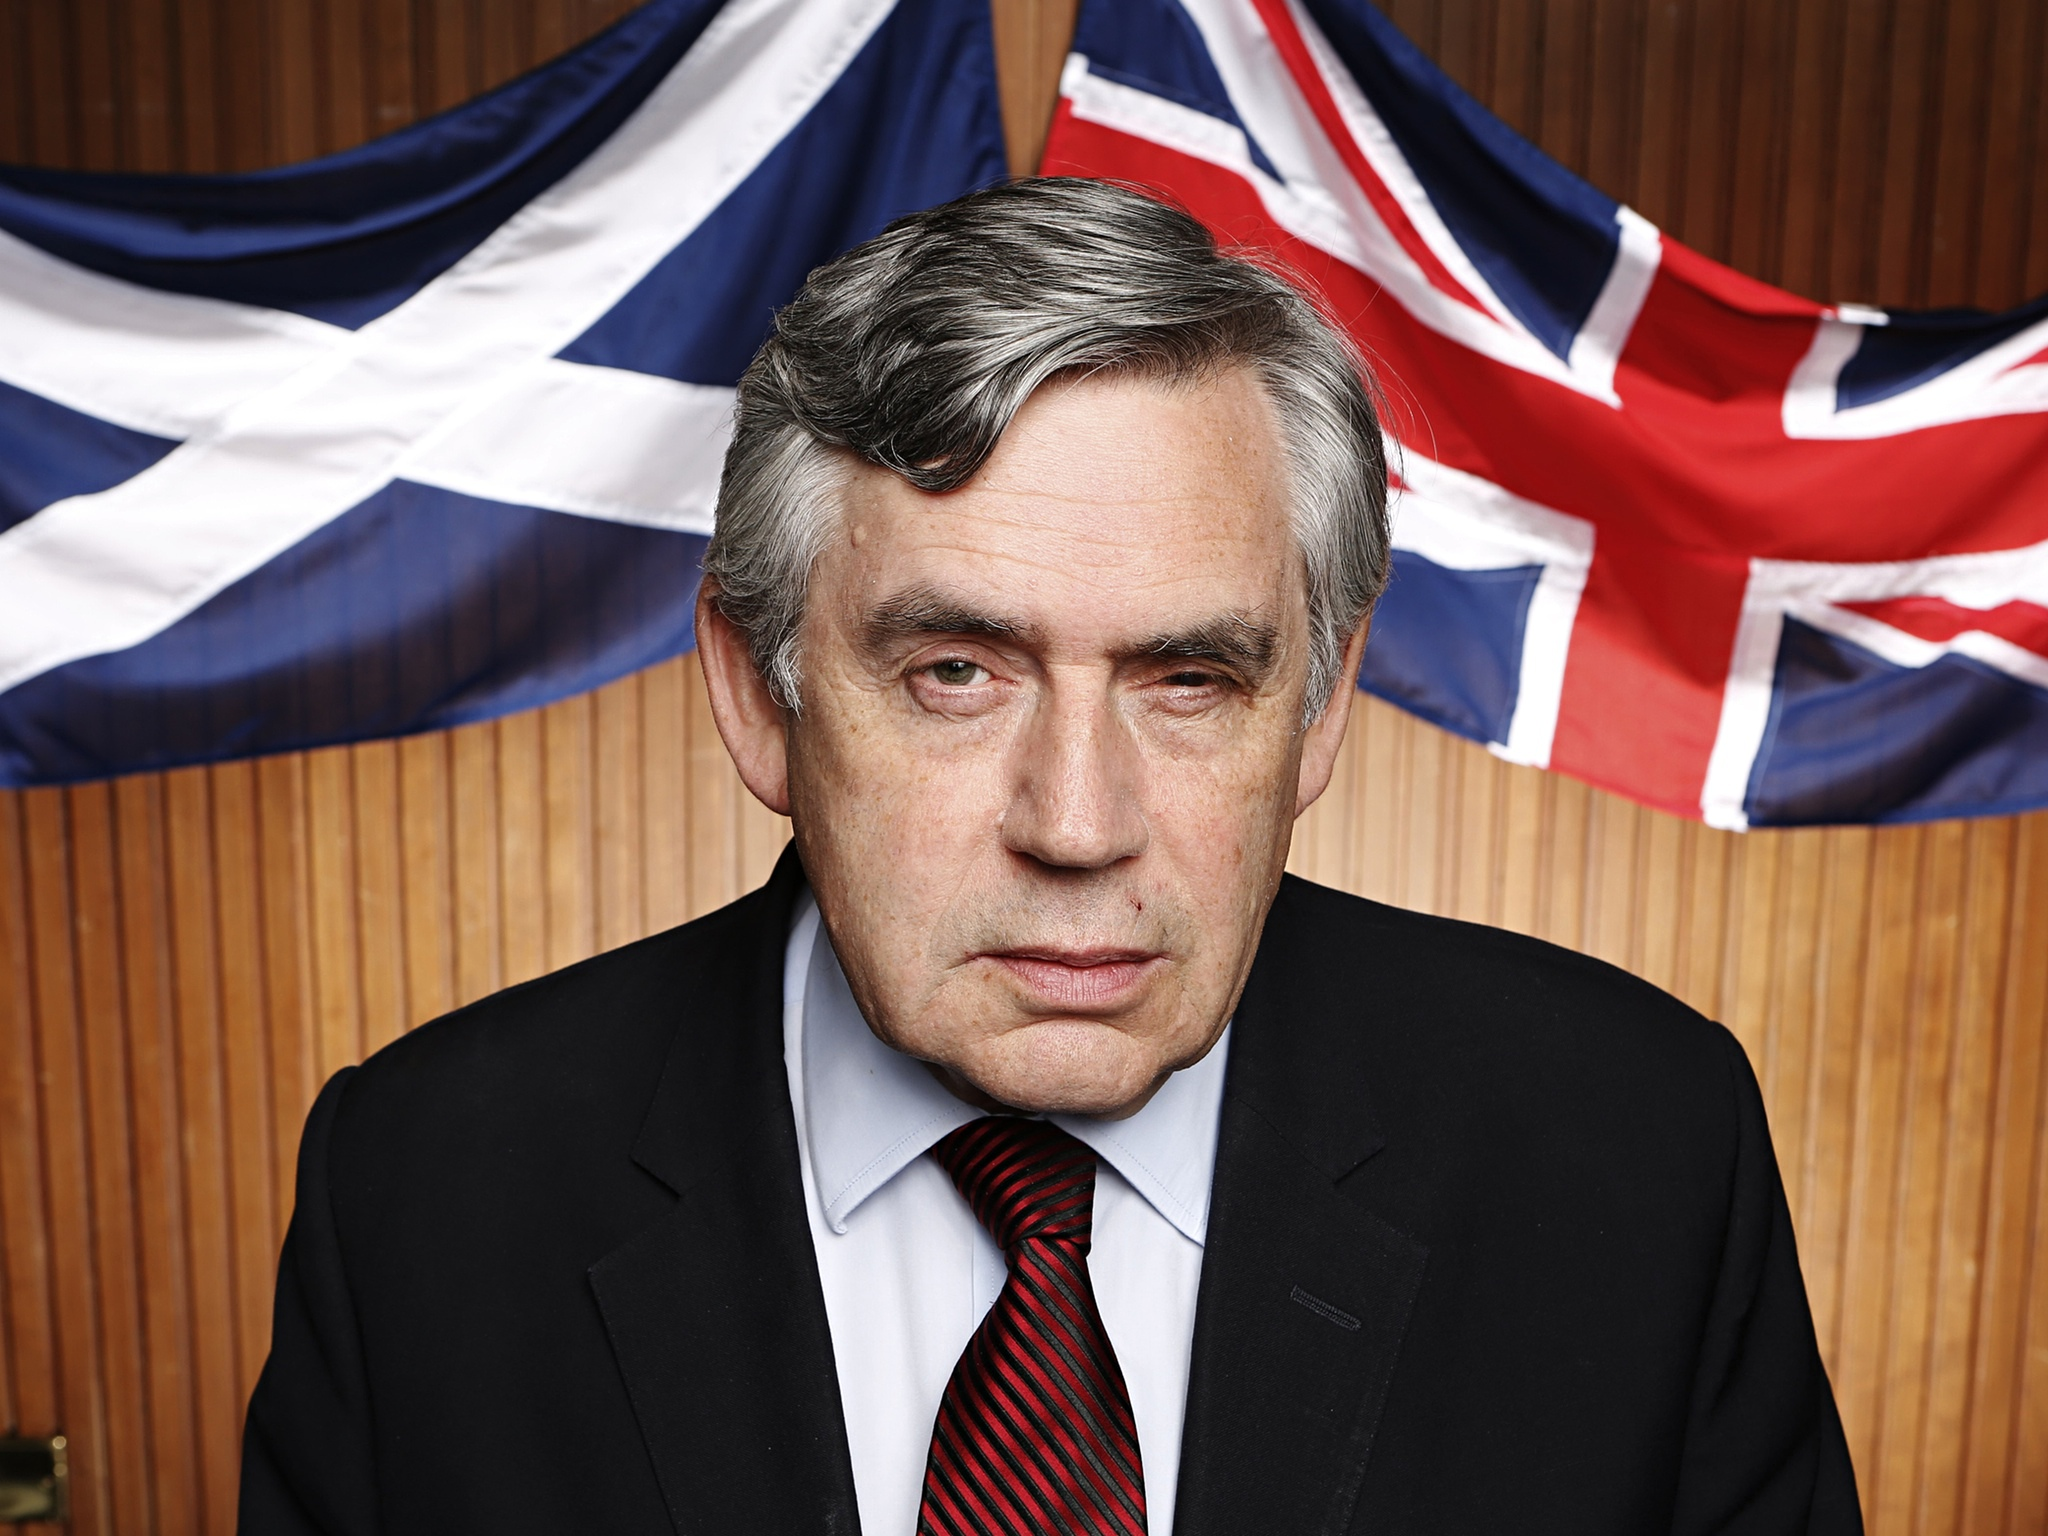 Gordon Brown's battle for Britain: 'You have to think about 100 years ...